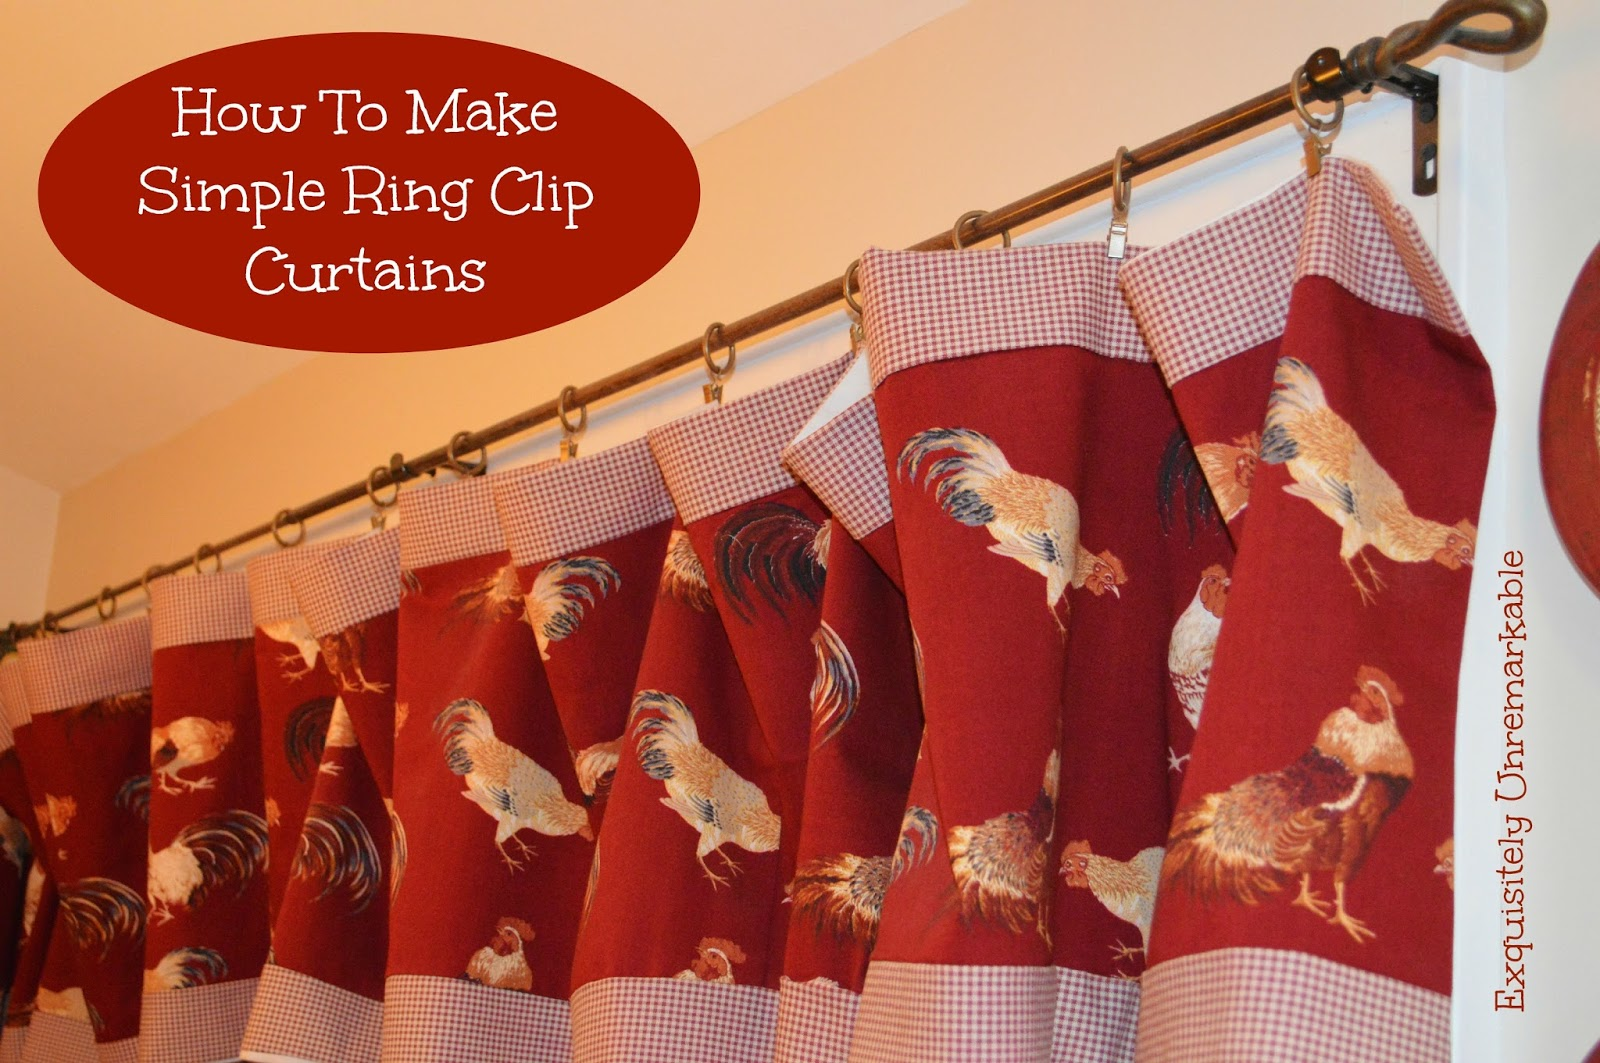 How To Make Ring Clip Curtains Text over image of Rooster Ring Clip Curtains